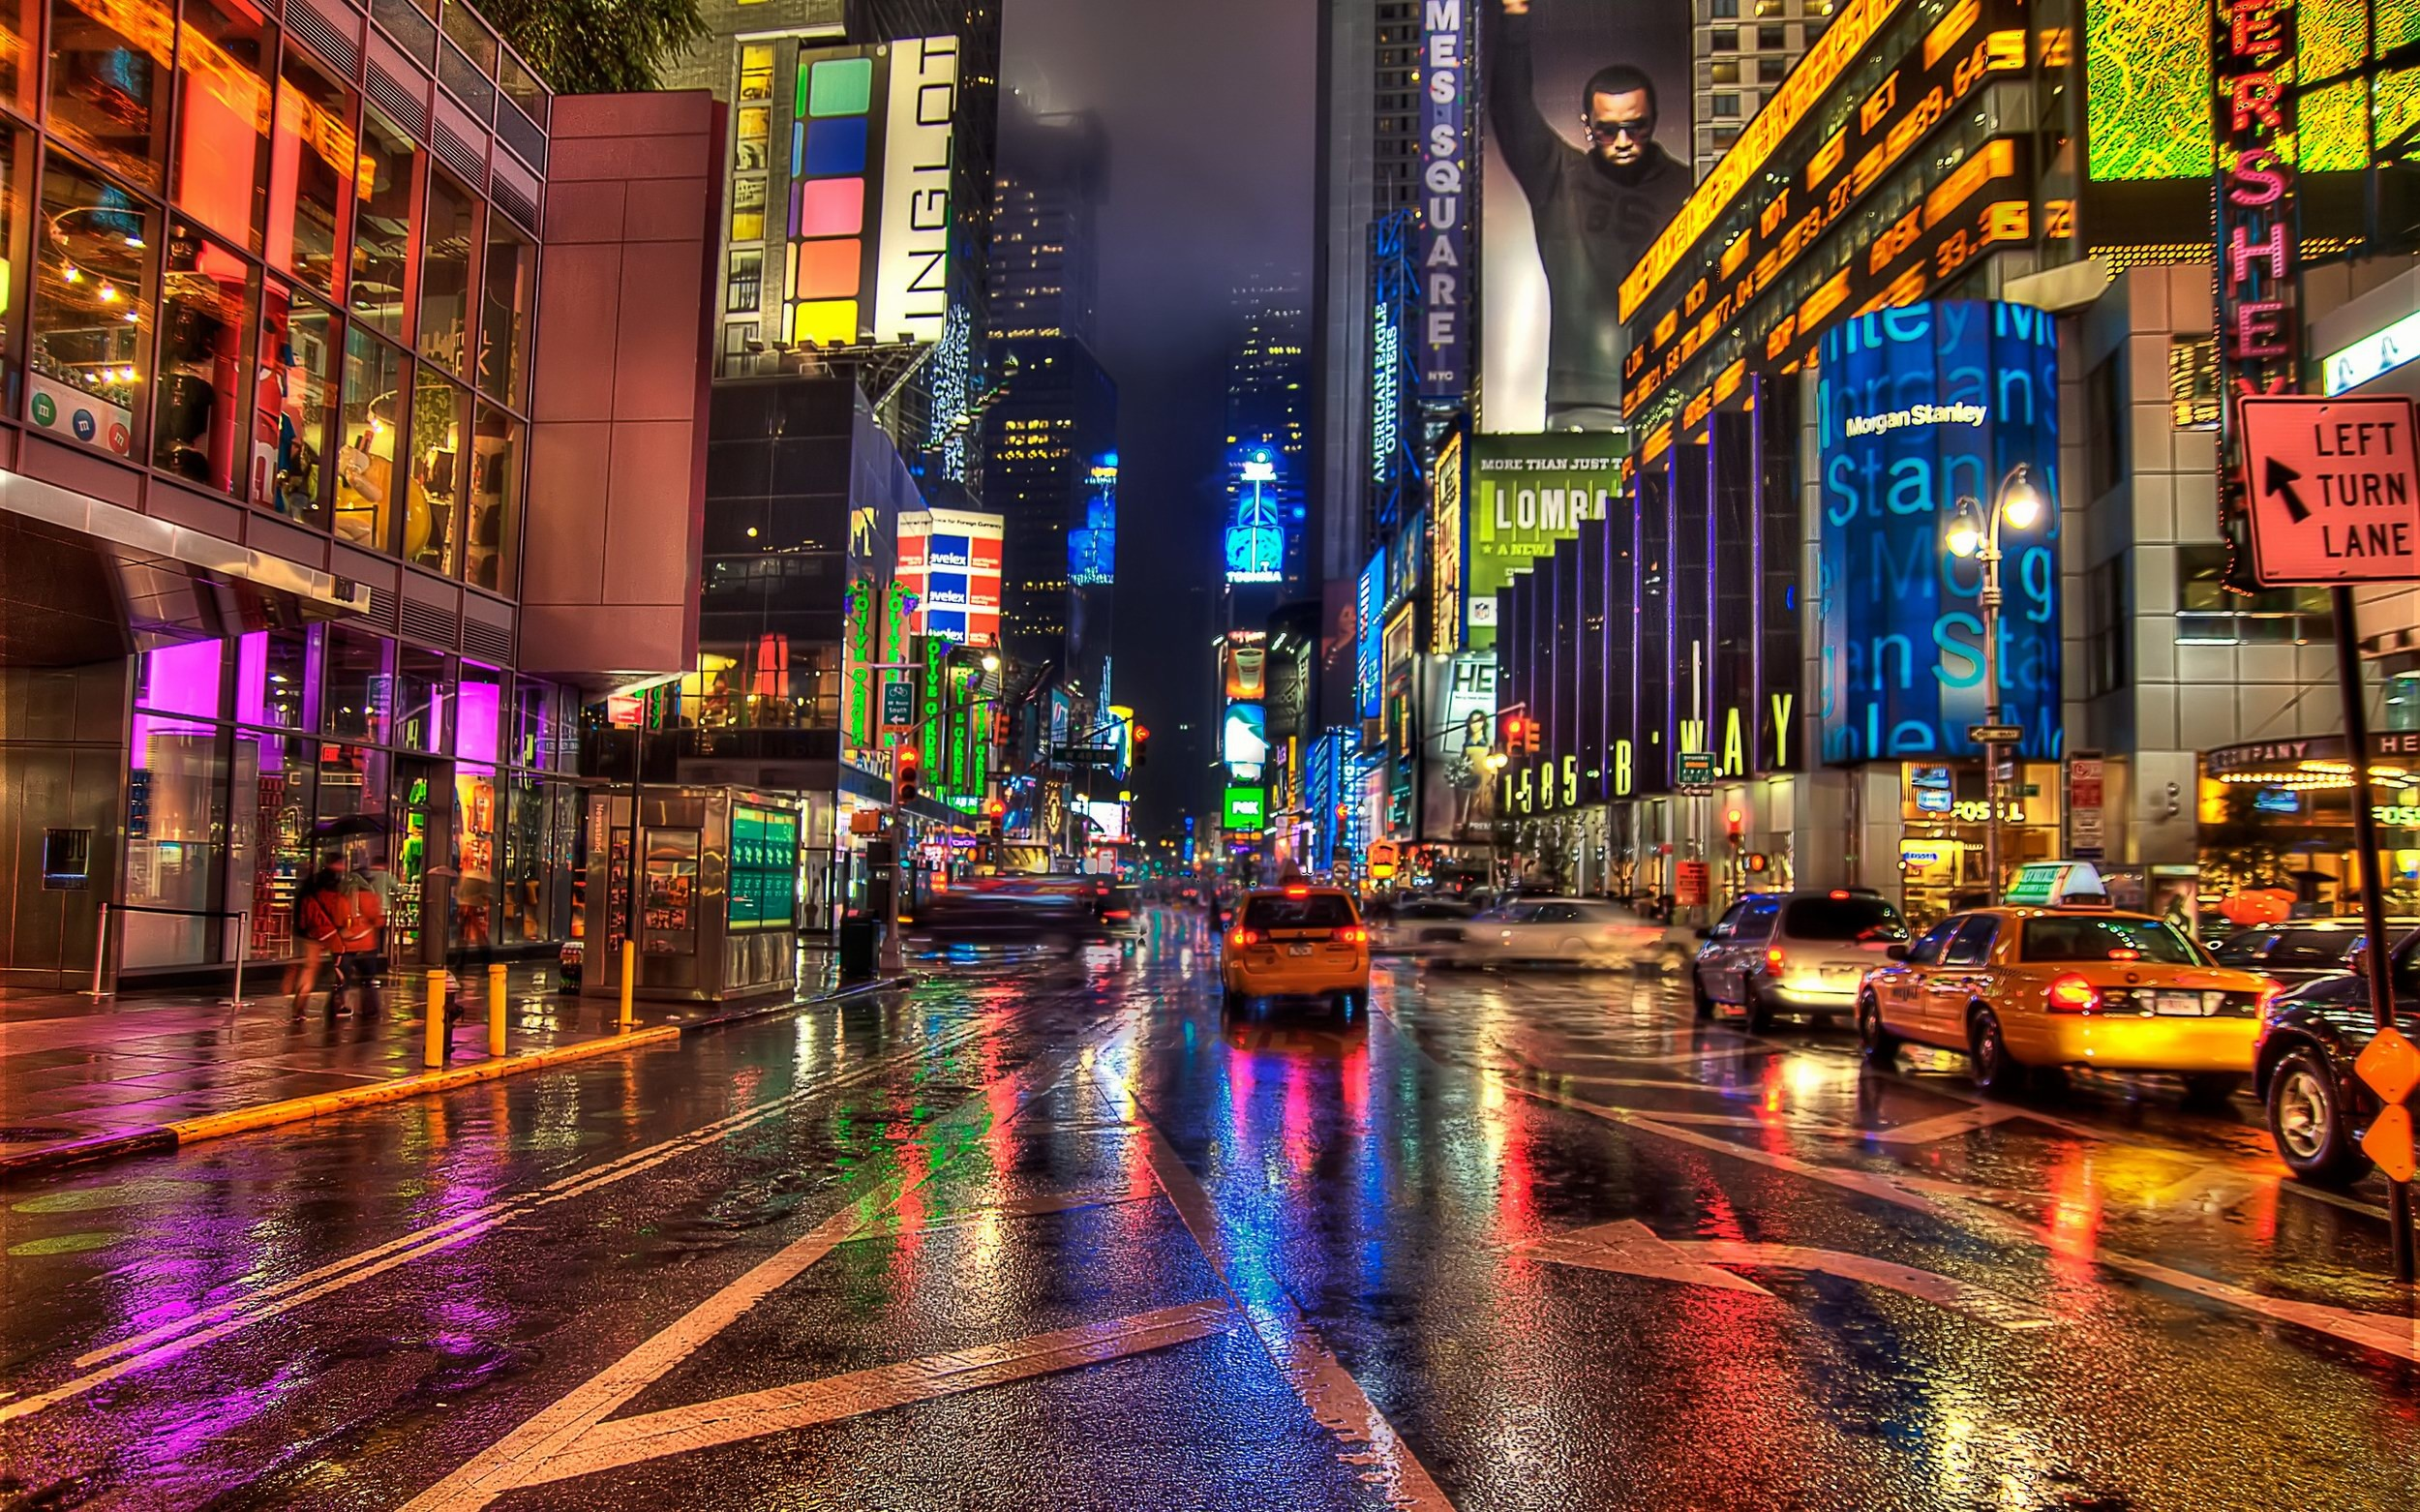 2500x1562 new york city street wallpapers desktop wallpapers hd 4k high definition  windows 10 colourful images download wallpaper free 2500×1562 Wallpaper HD